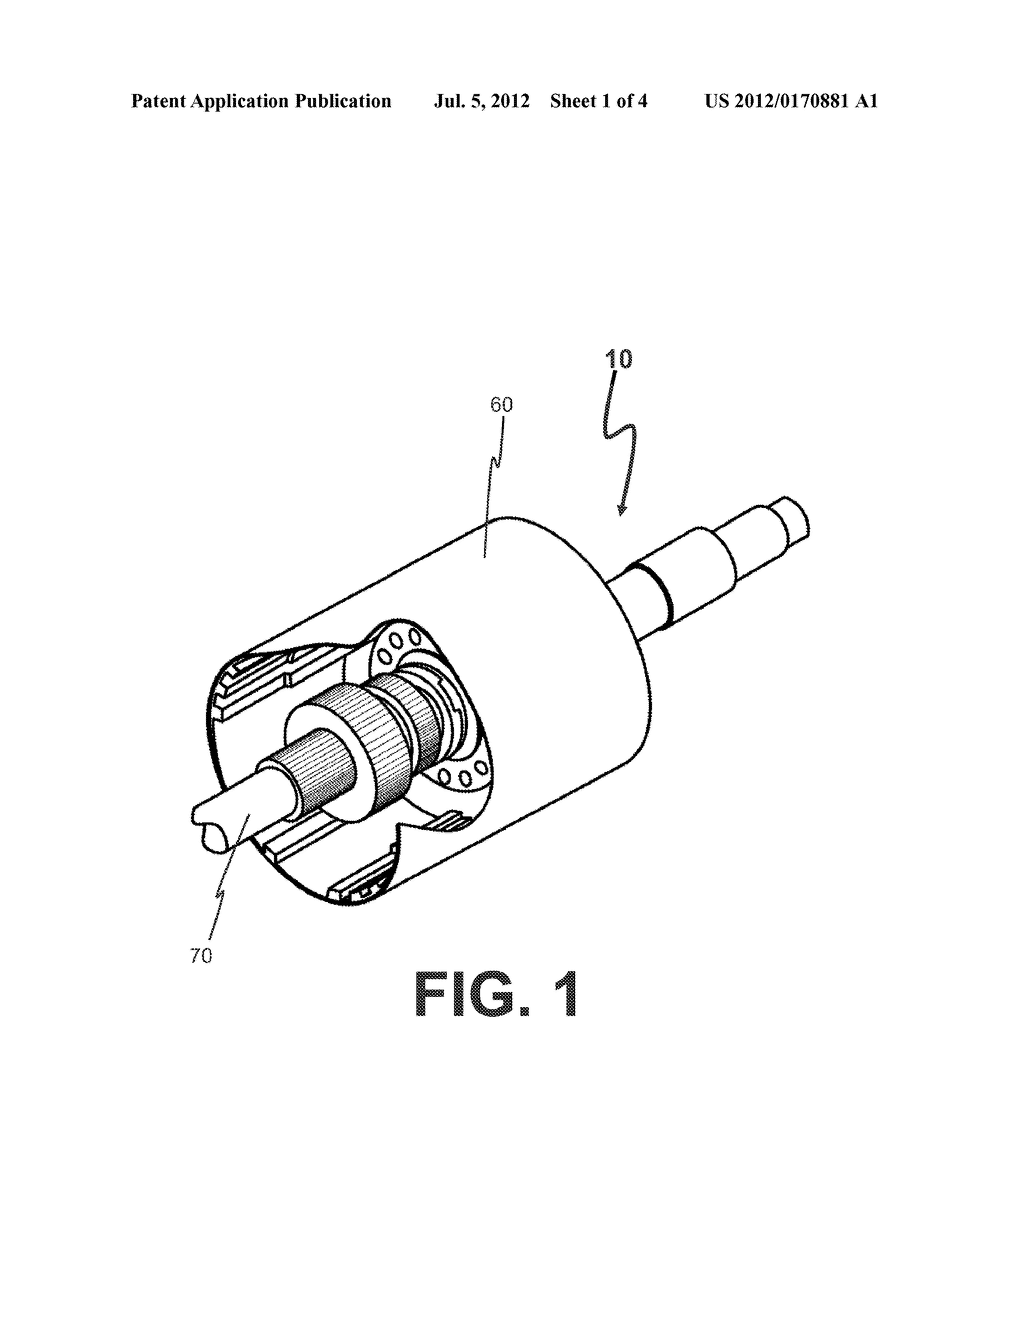 gm automatic transmission 700r4 through 4l70e increase in input shaft  bearing surface area on rear stator bushing - diagram, schematic, and image  02